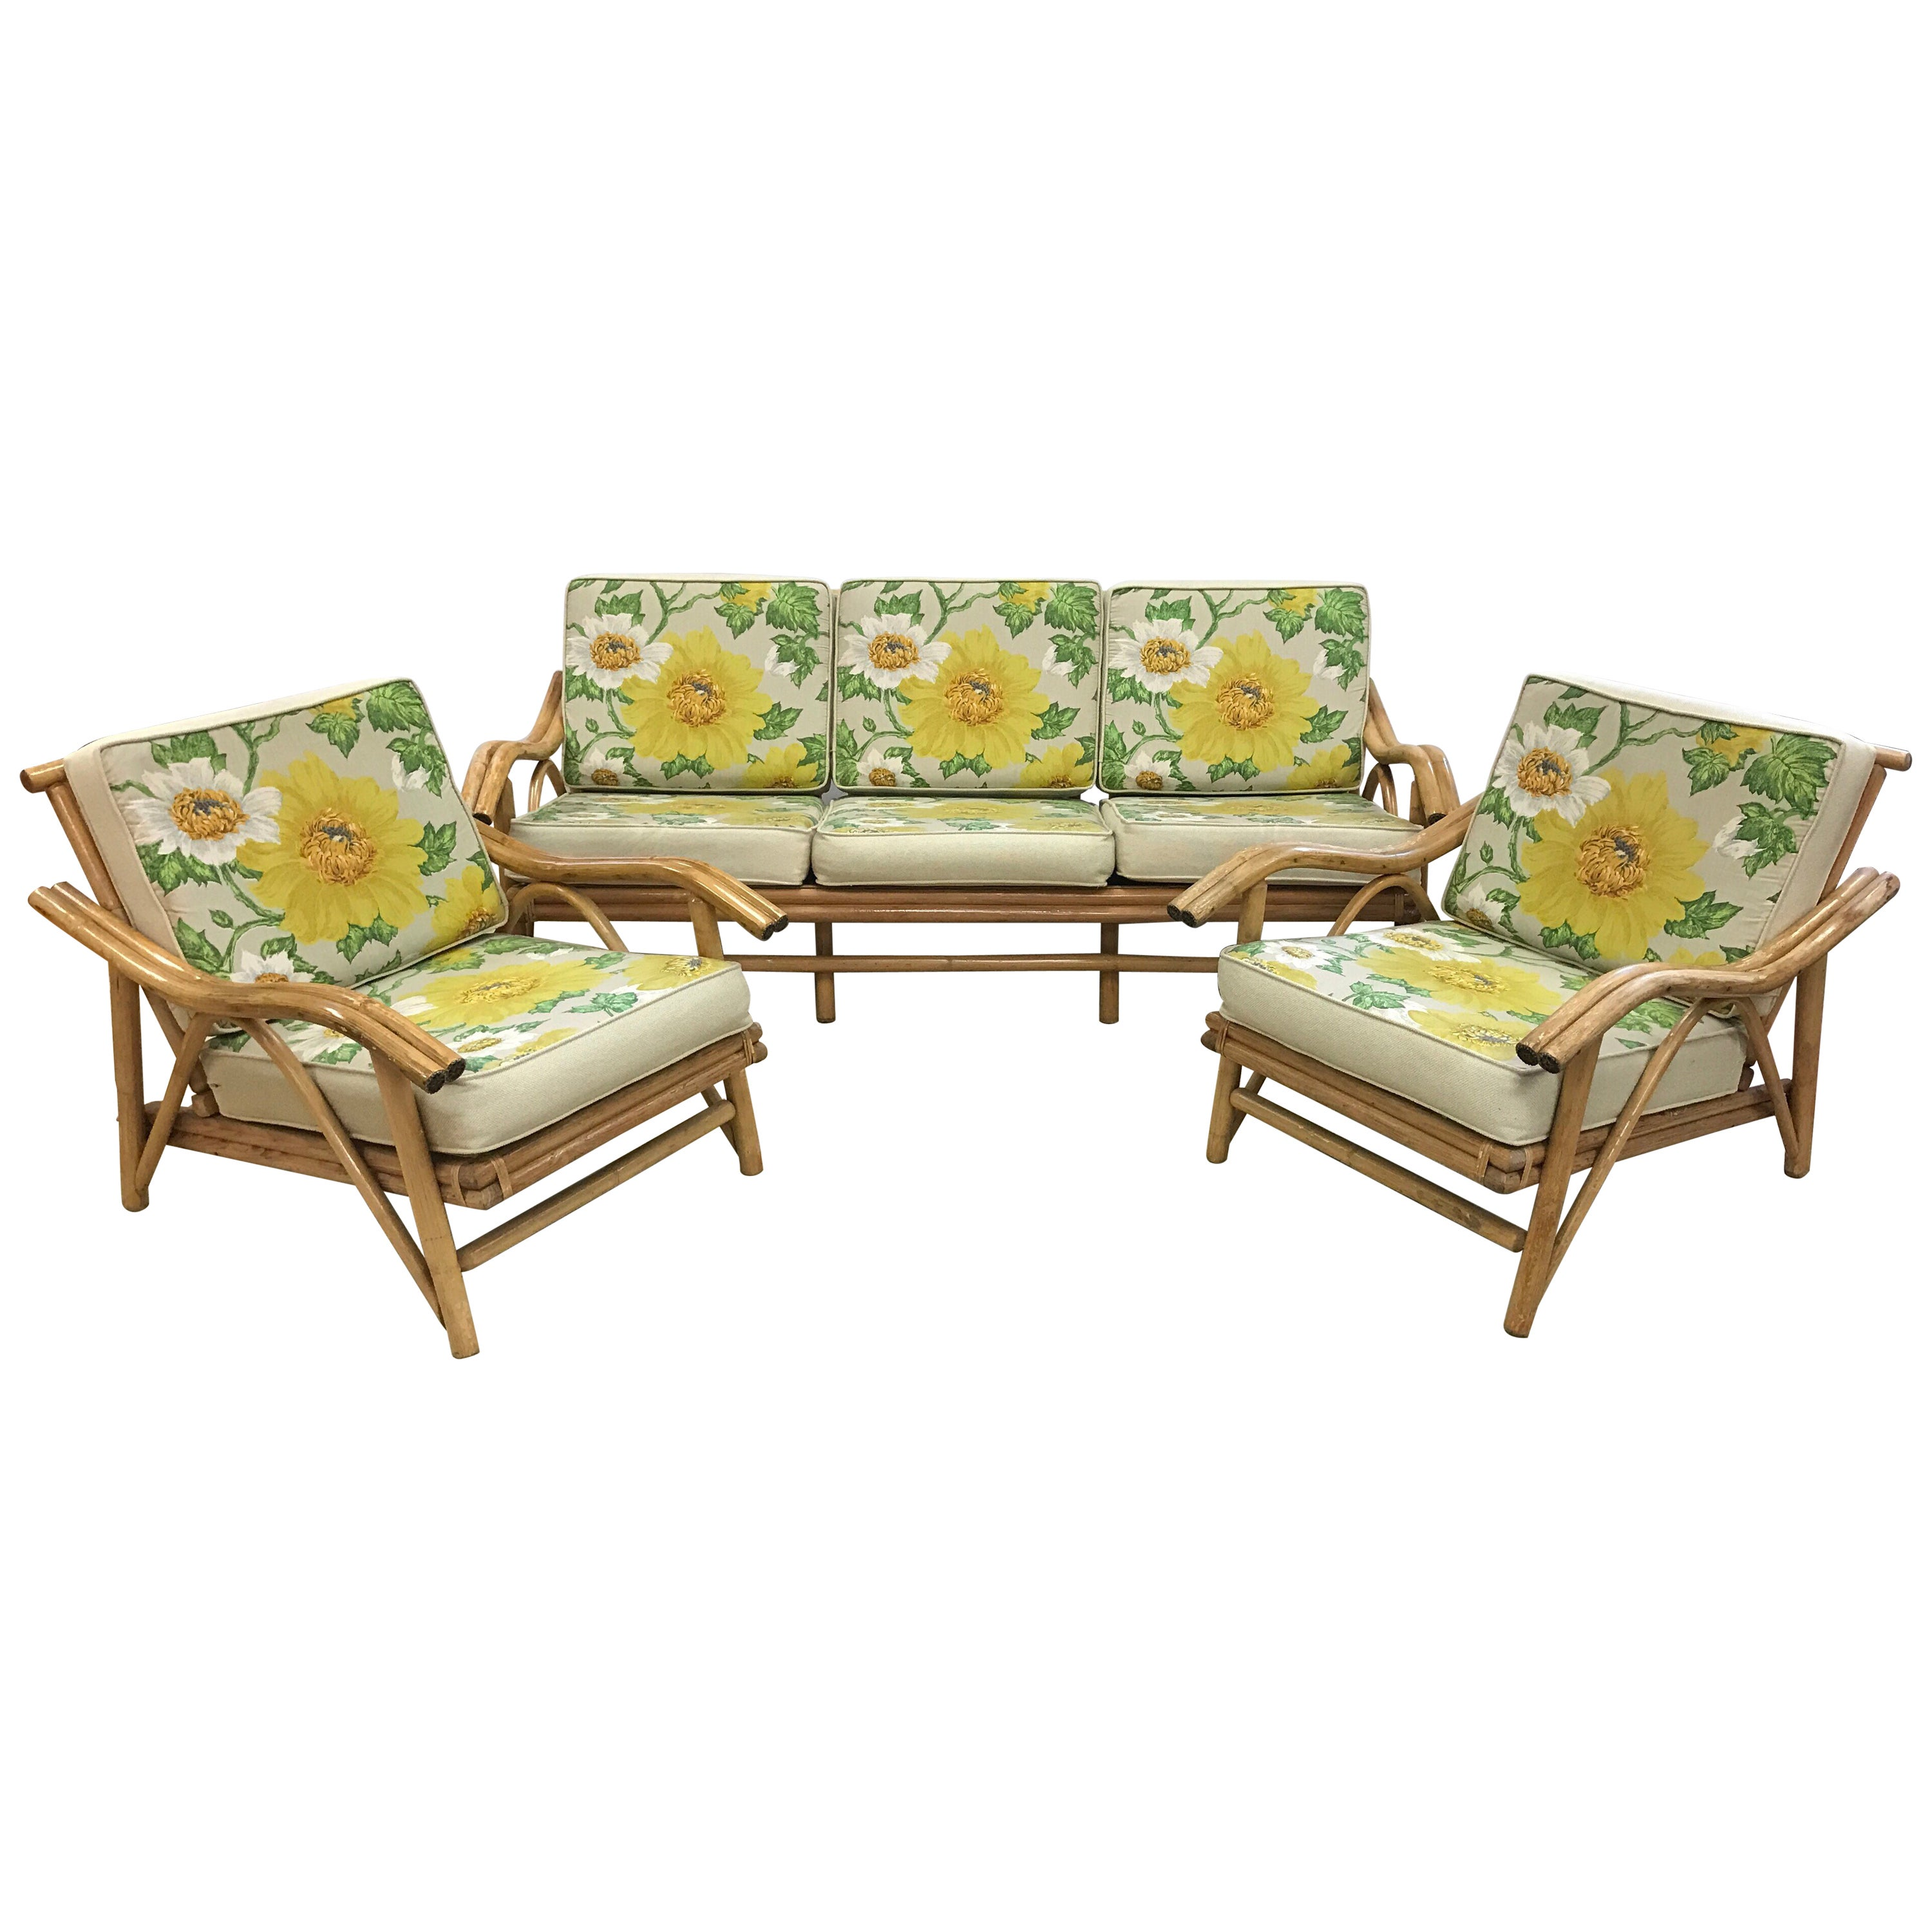 bamboo couch and chairs best swivel glider barrel chair vintage mid century modern matching sofa two at 1stdibs